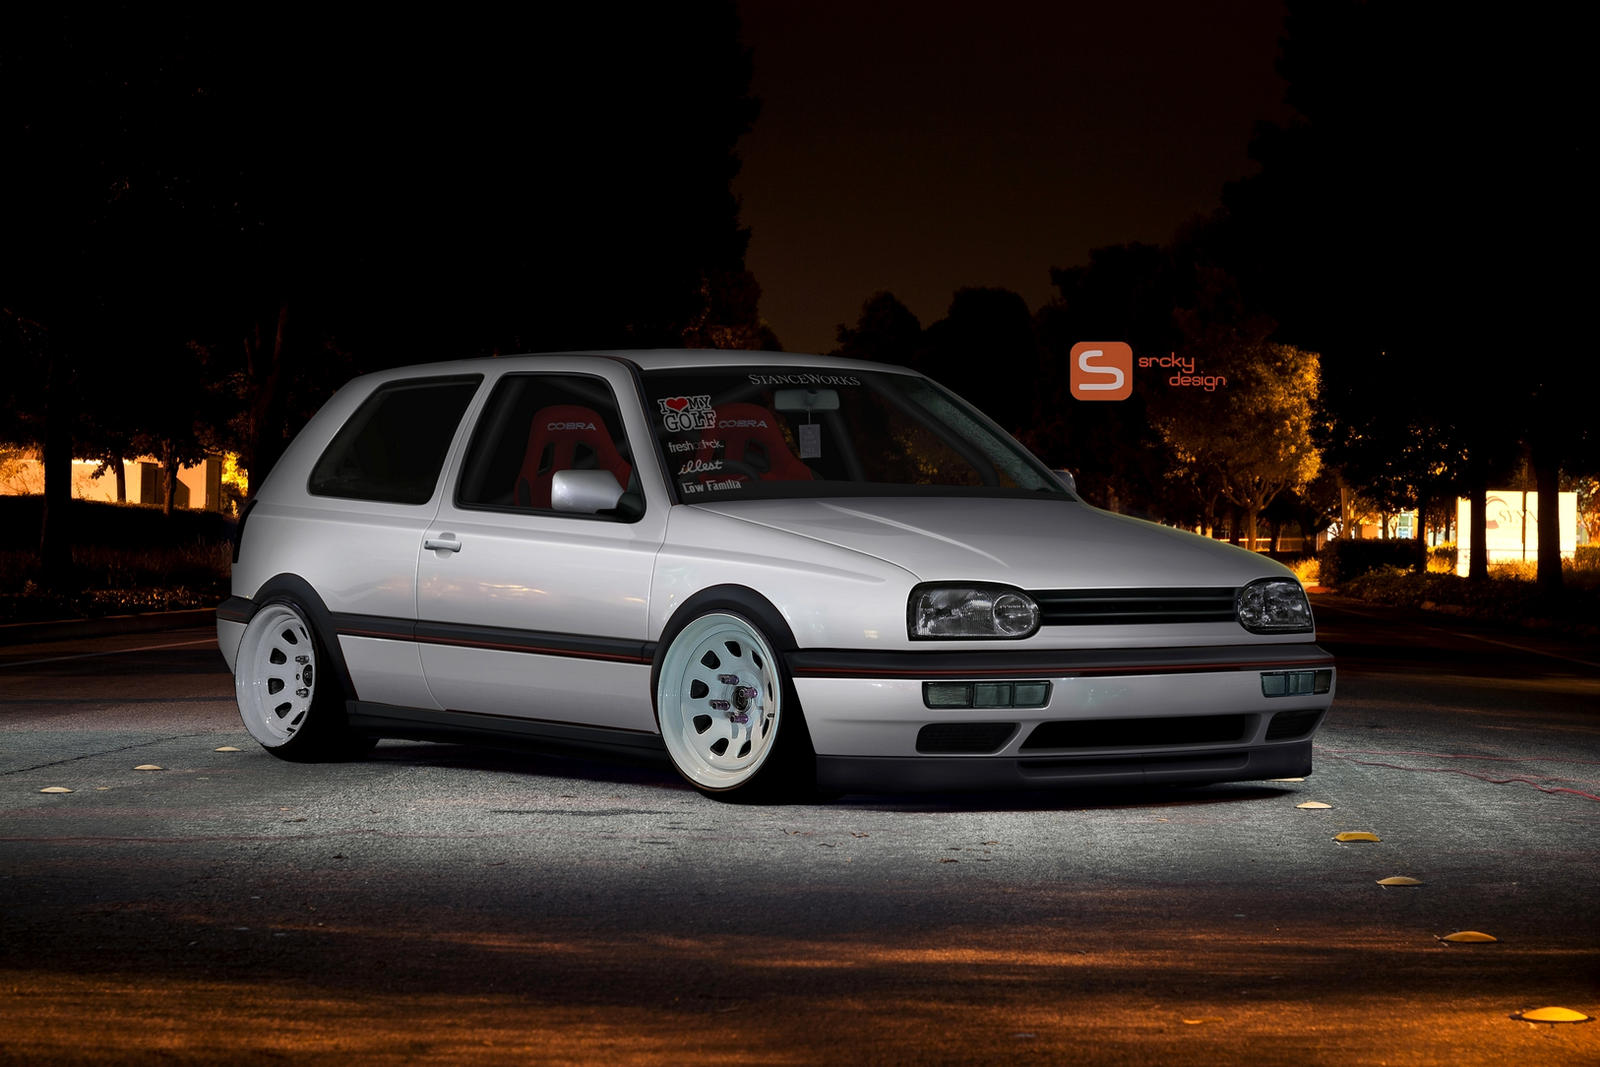 Vw Golf Mk3 By Srcky On Deviantart